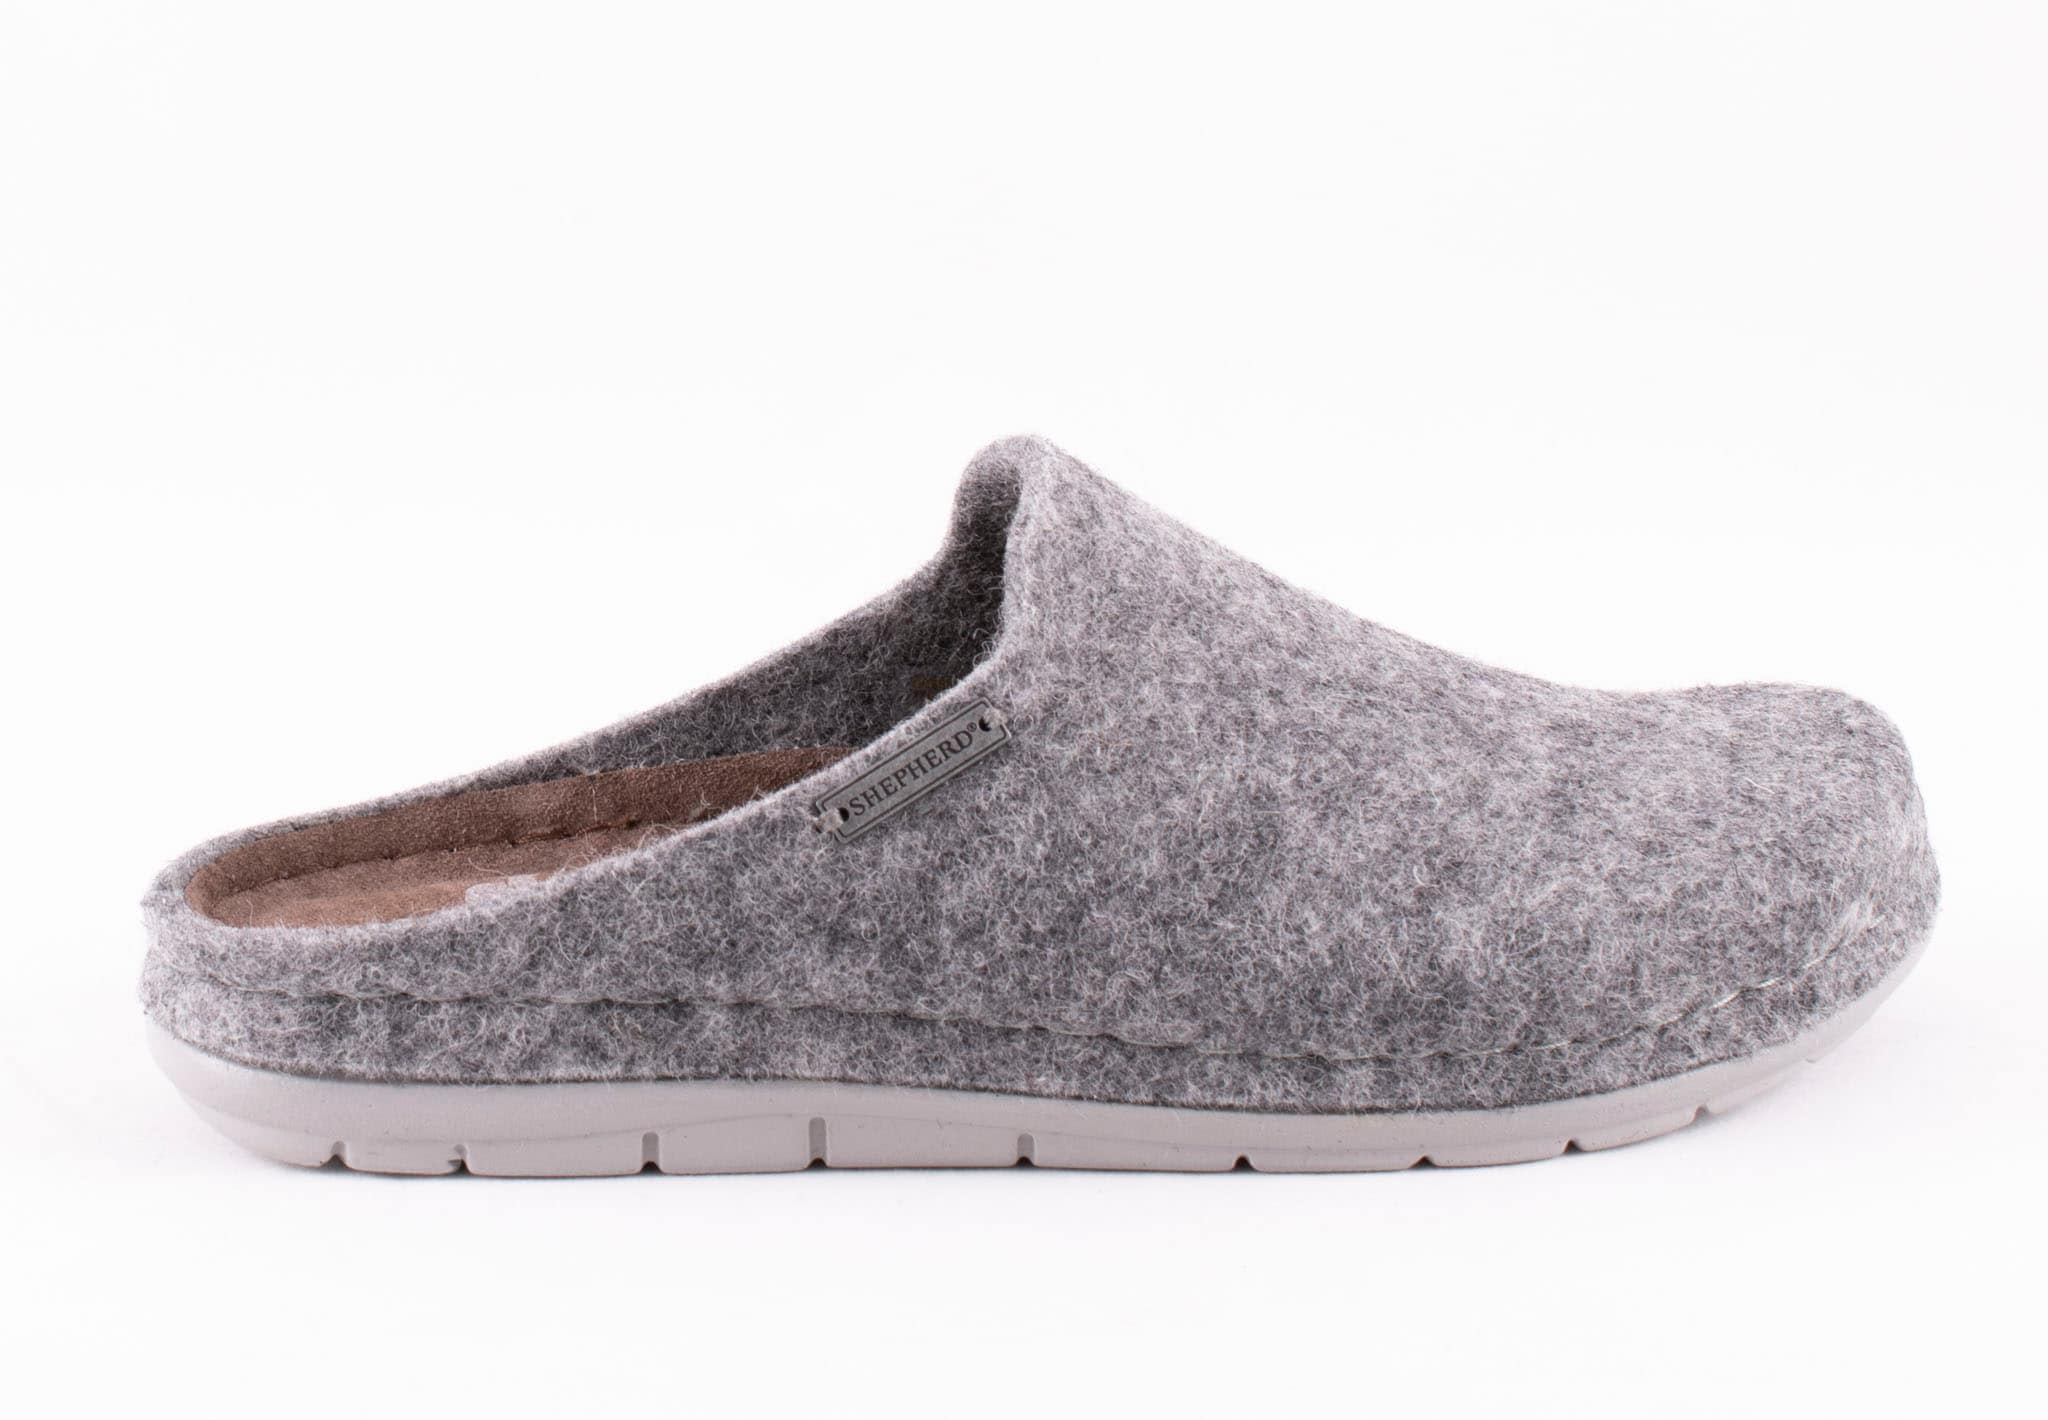 Annsofie wool slippers